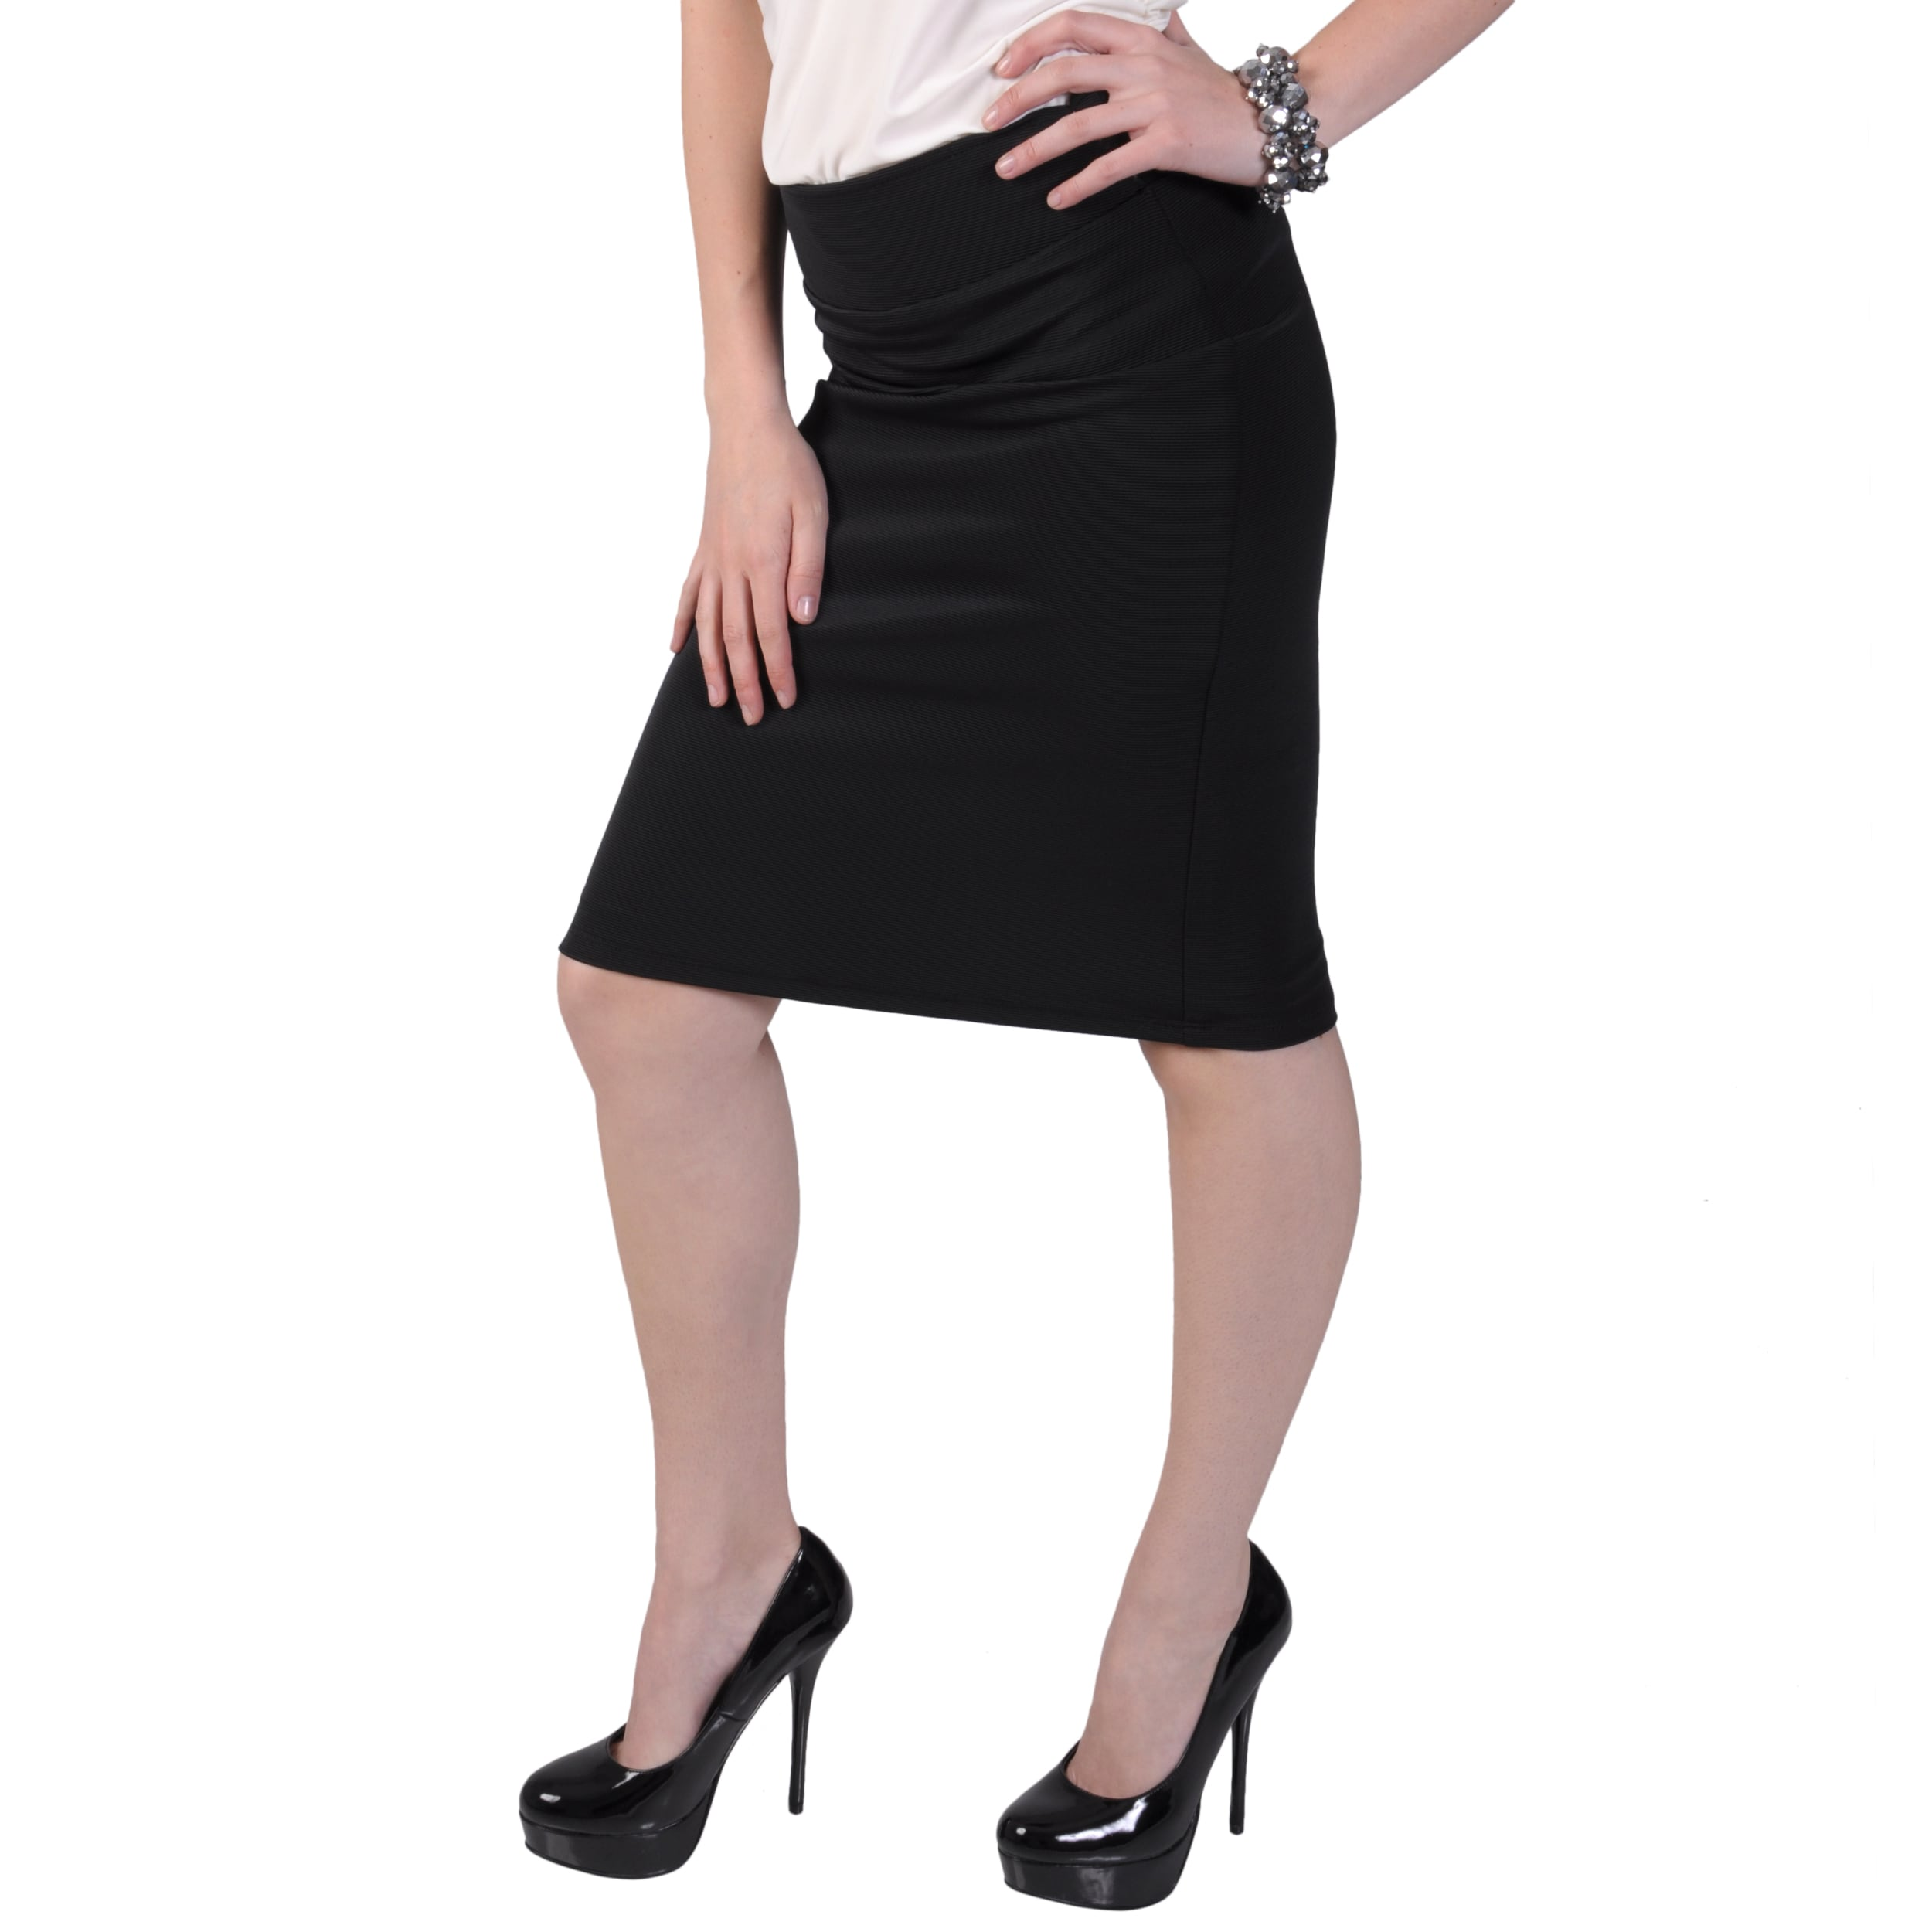 Tressa Designs Women's Stretchy Pinstriped Pencil Skirt